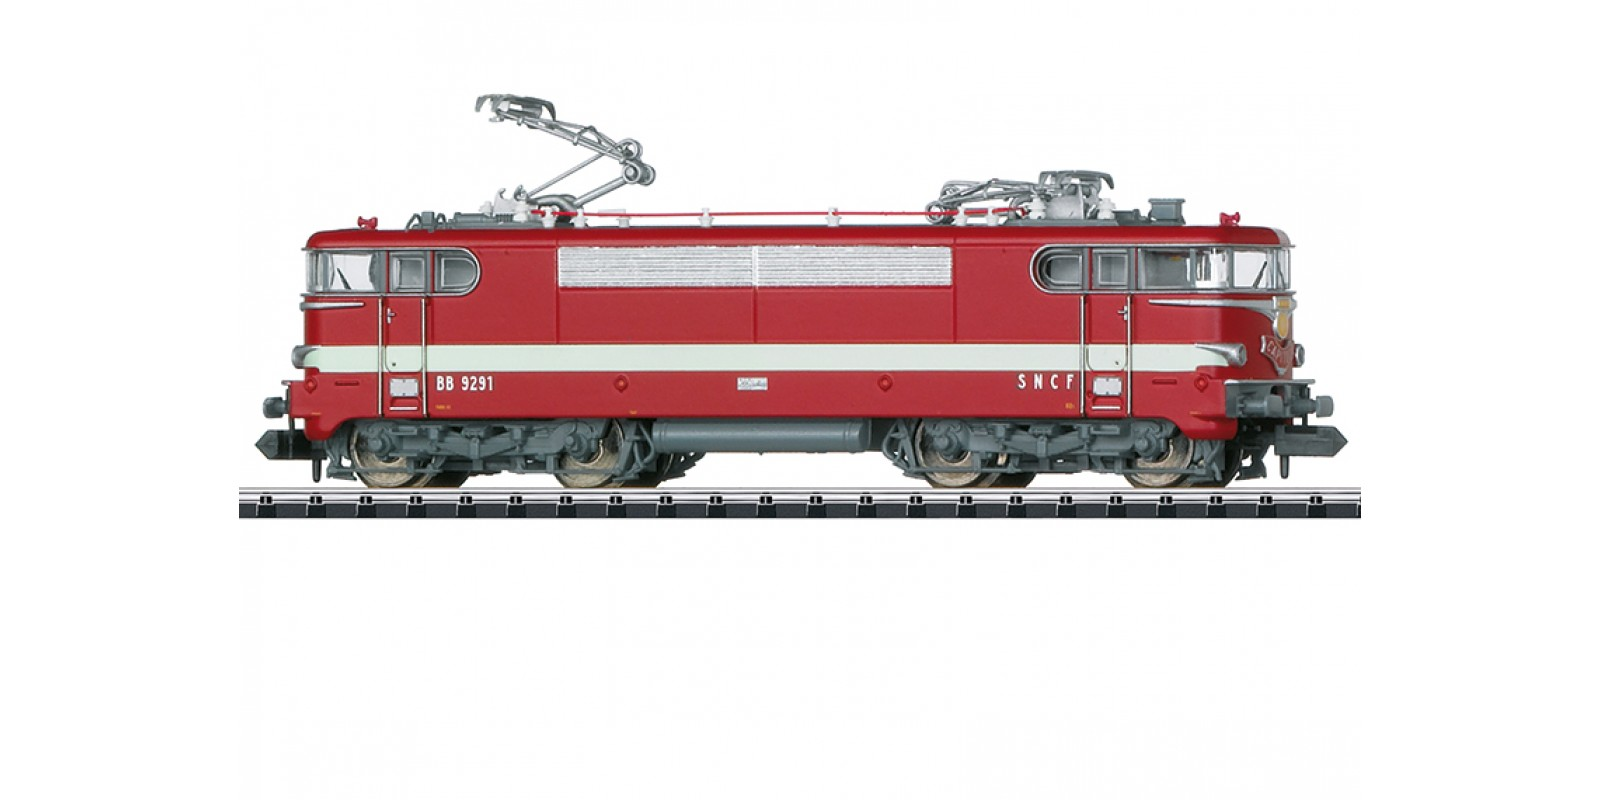 T16691 Class BB 9200 Electric Locomotive